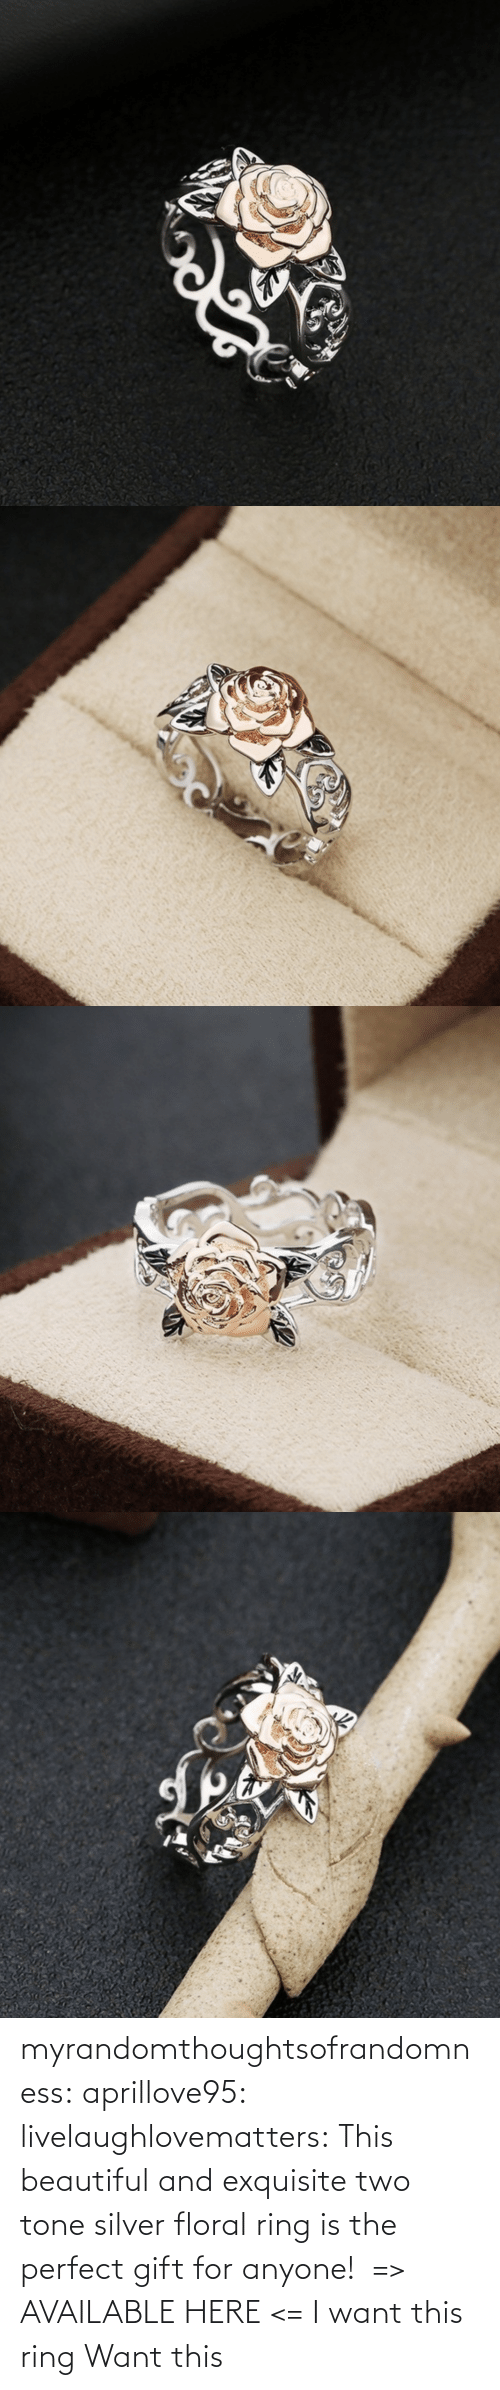 The Perfect: myrandomthoughtsofrandomness:  aprillove95: livelaughlovematters:  This beautiful and exquisite two tone silver floral ring is the perfect gift for anyone! => AVAILABLE HERE <=    I want this ring     Want this